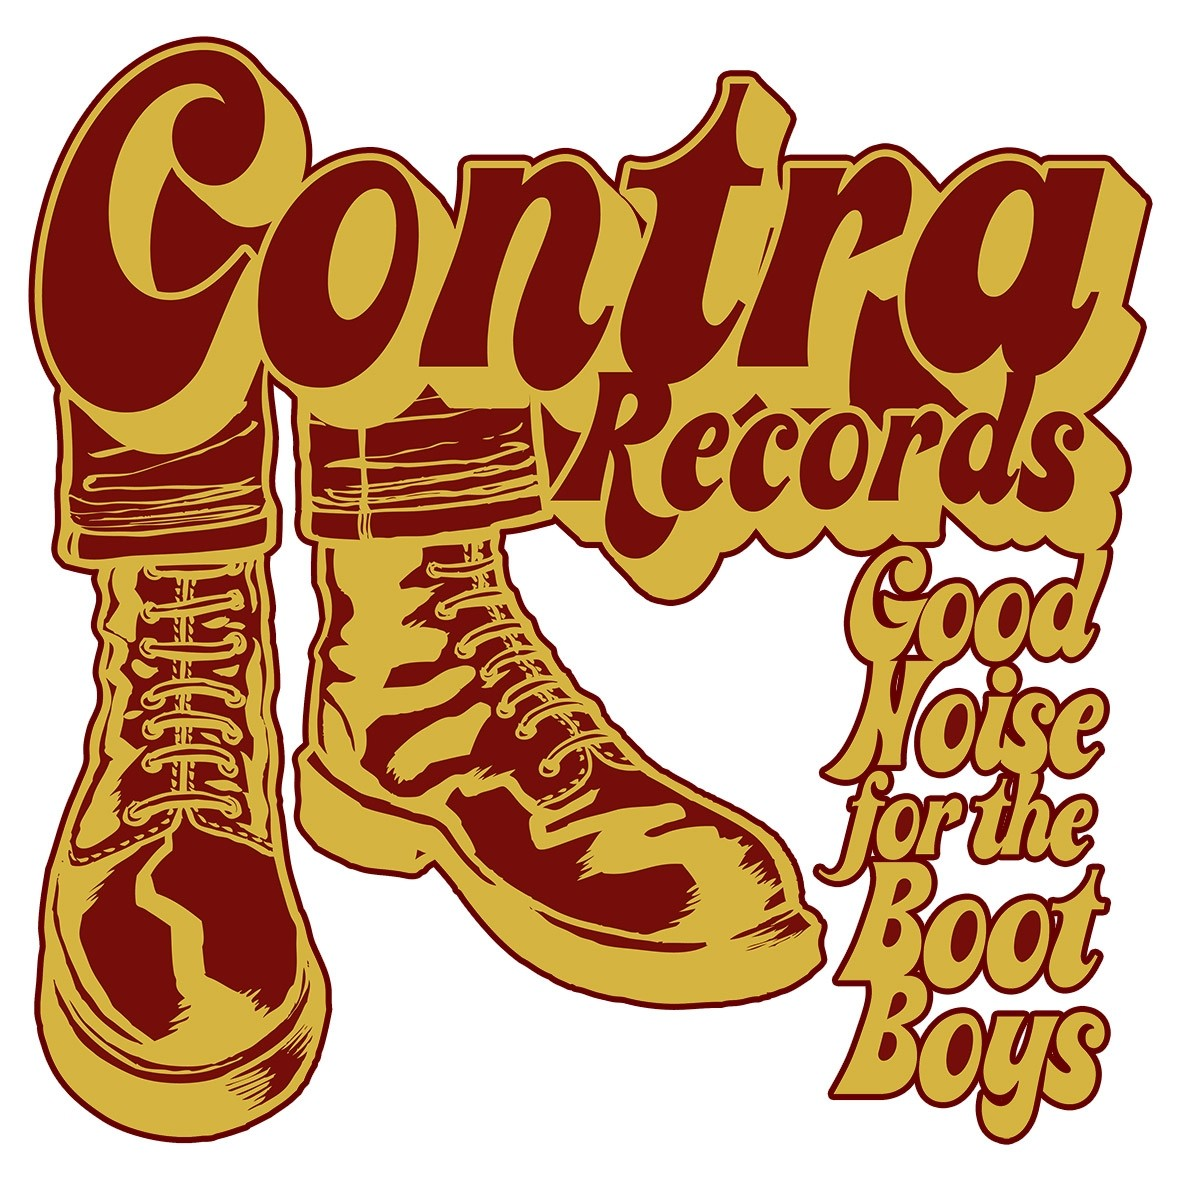 Contra Records - Bootboys - Sticker red/yellow